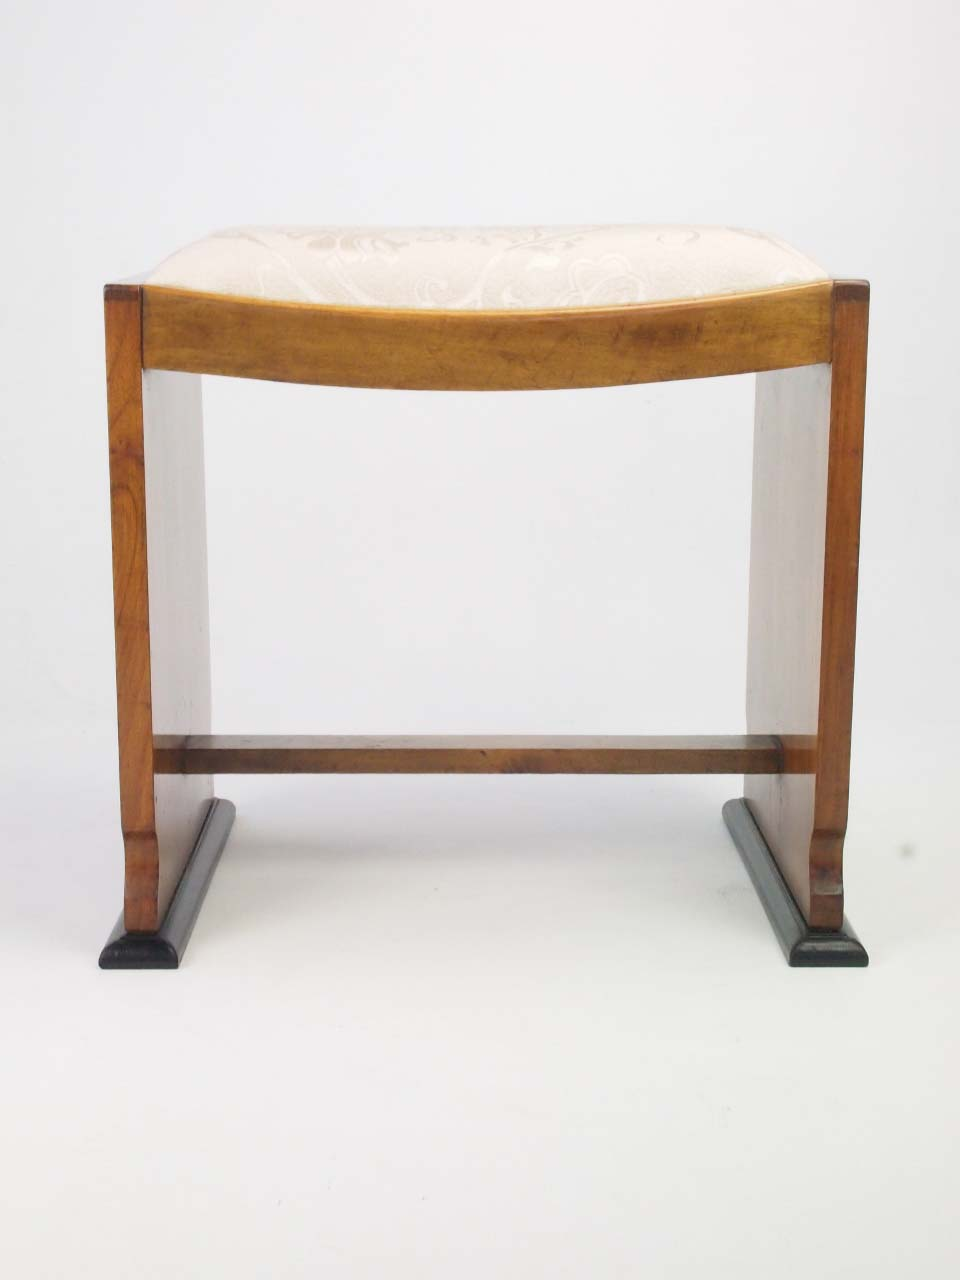 Dressing Table Chairs And Stools: Art Deco Walnut Dressing Table Stool For Sale Online